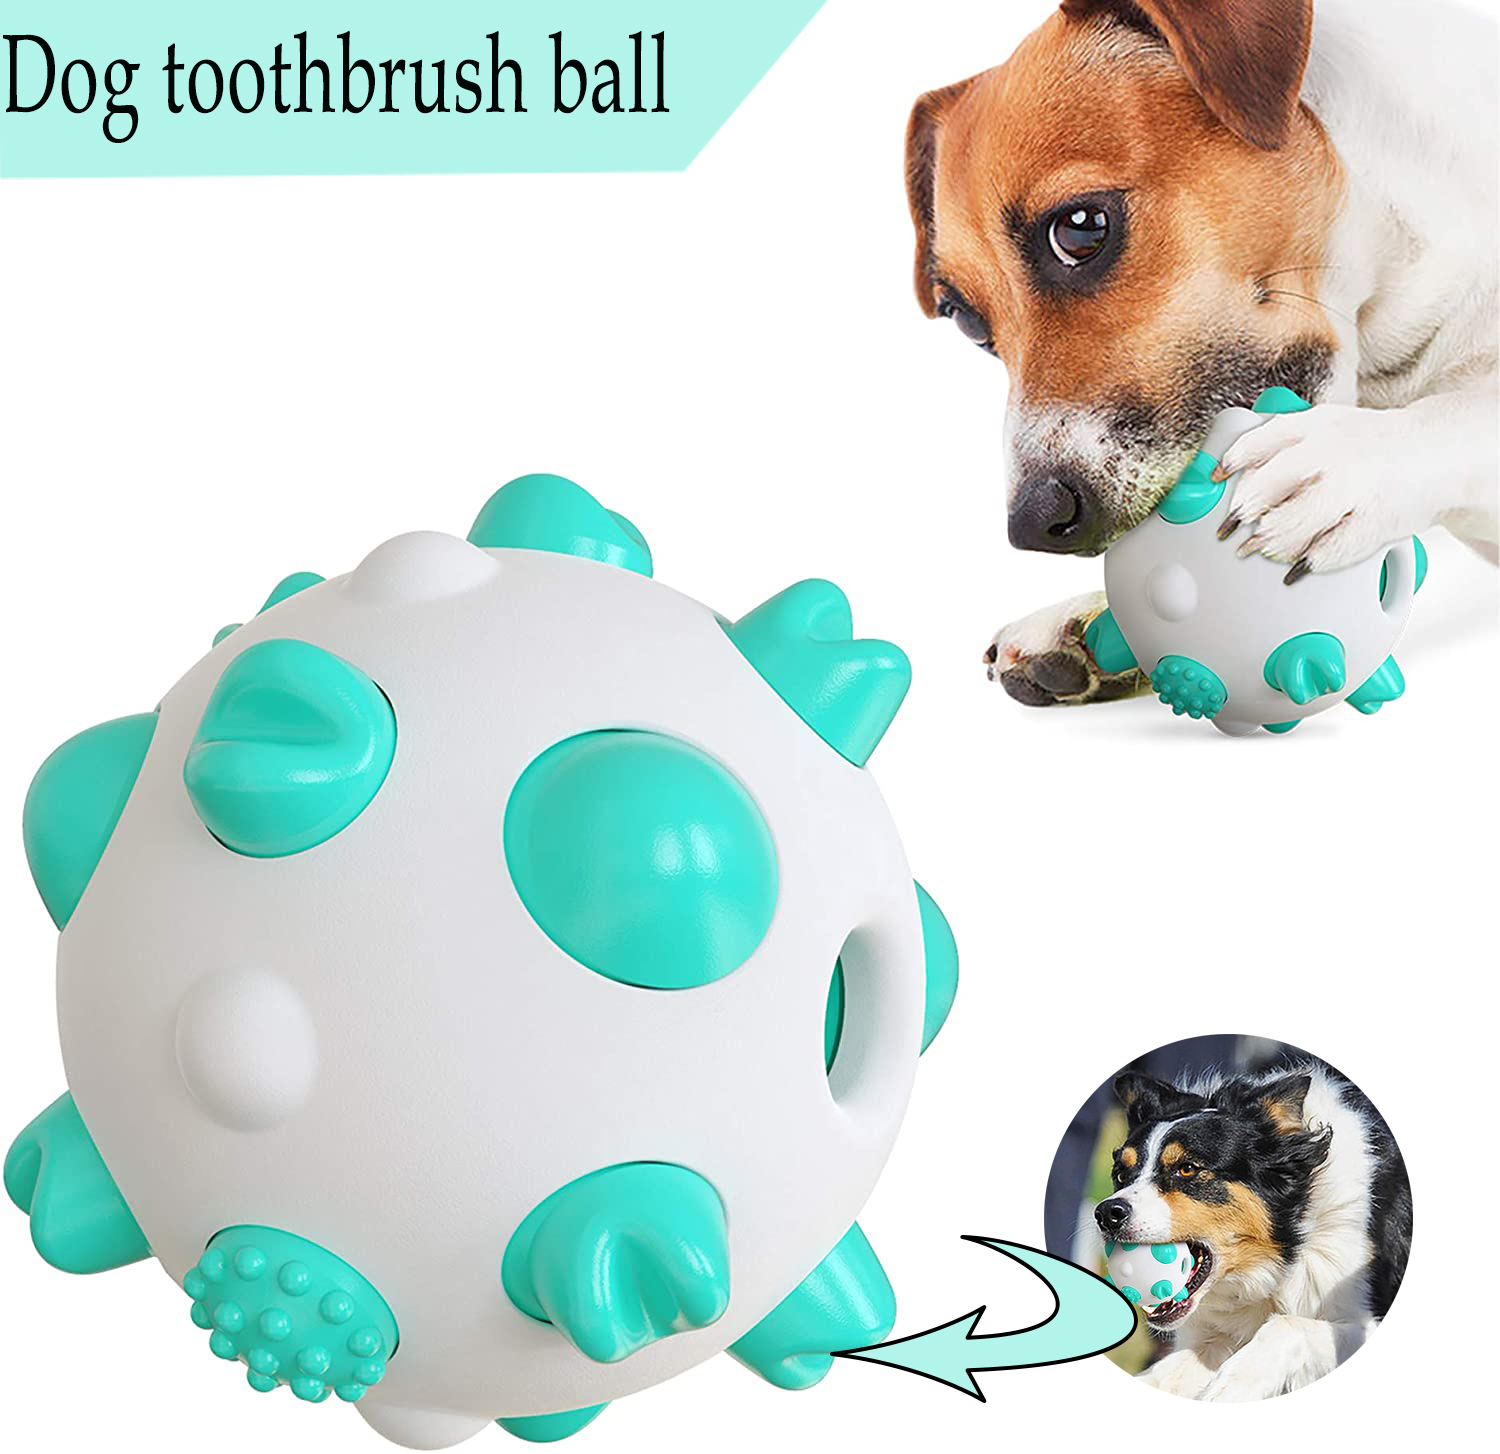 lnkoo dog toys for aggressive chewers large breed dog balls dog toys for medium dogs dog toothpaste puppy teething chew toys dog toys large breed